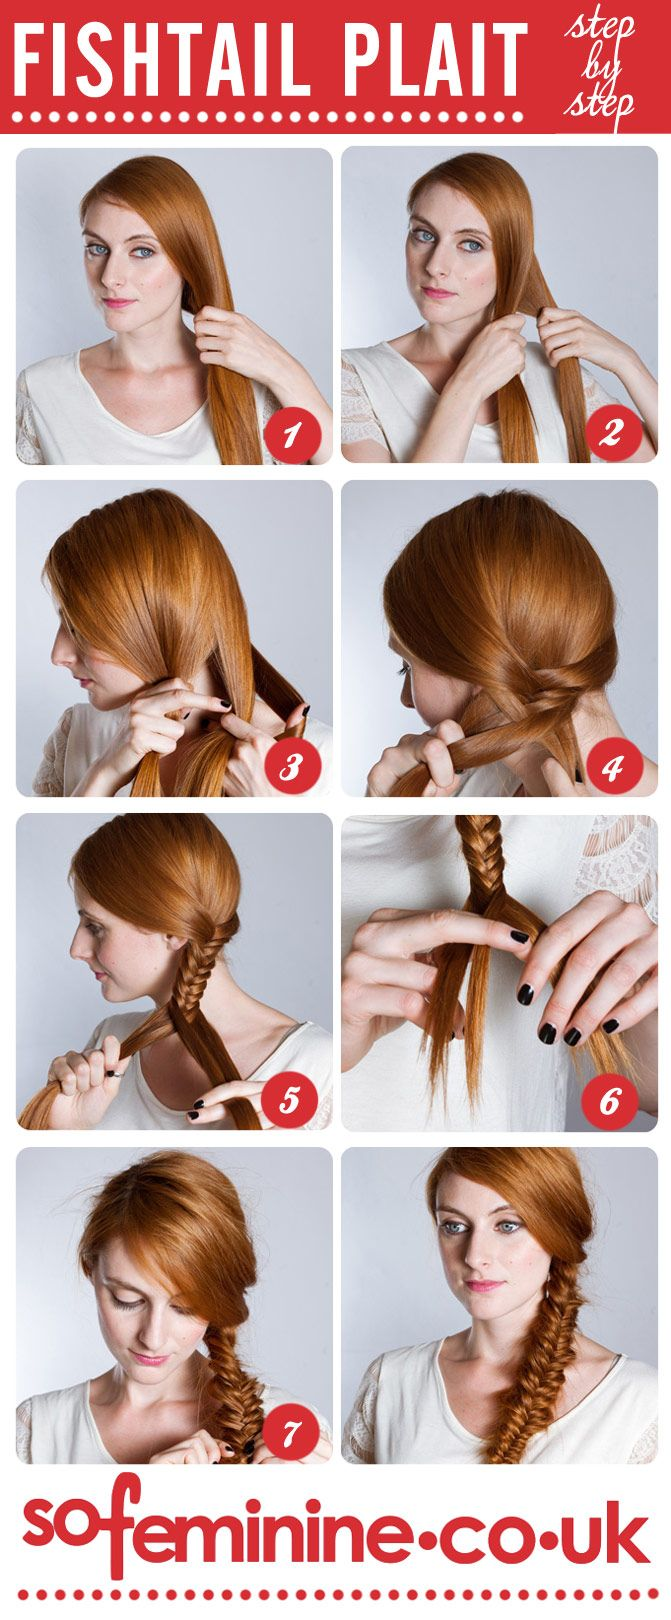 Diy Tutorial: How To Do A Fishtail Plait